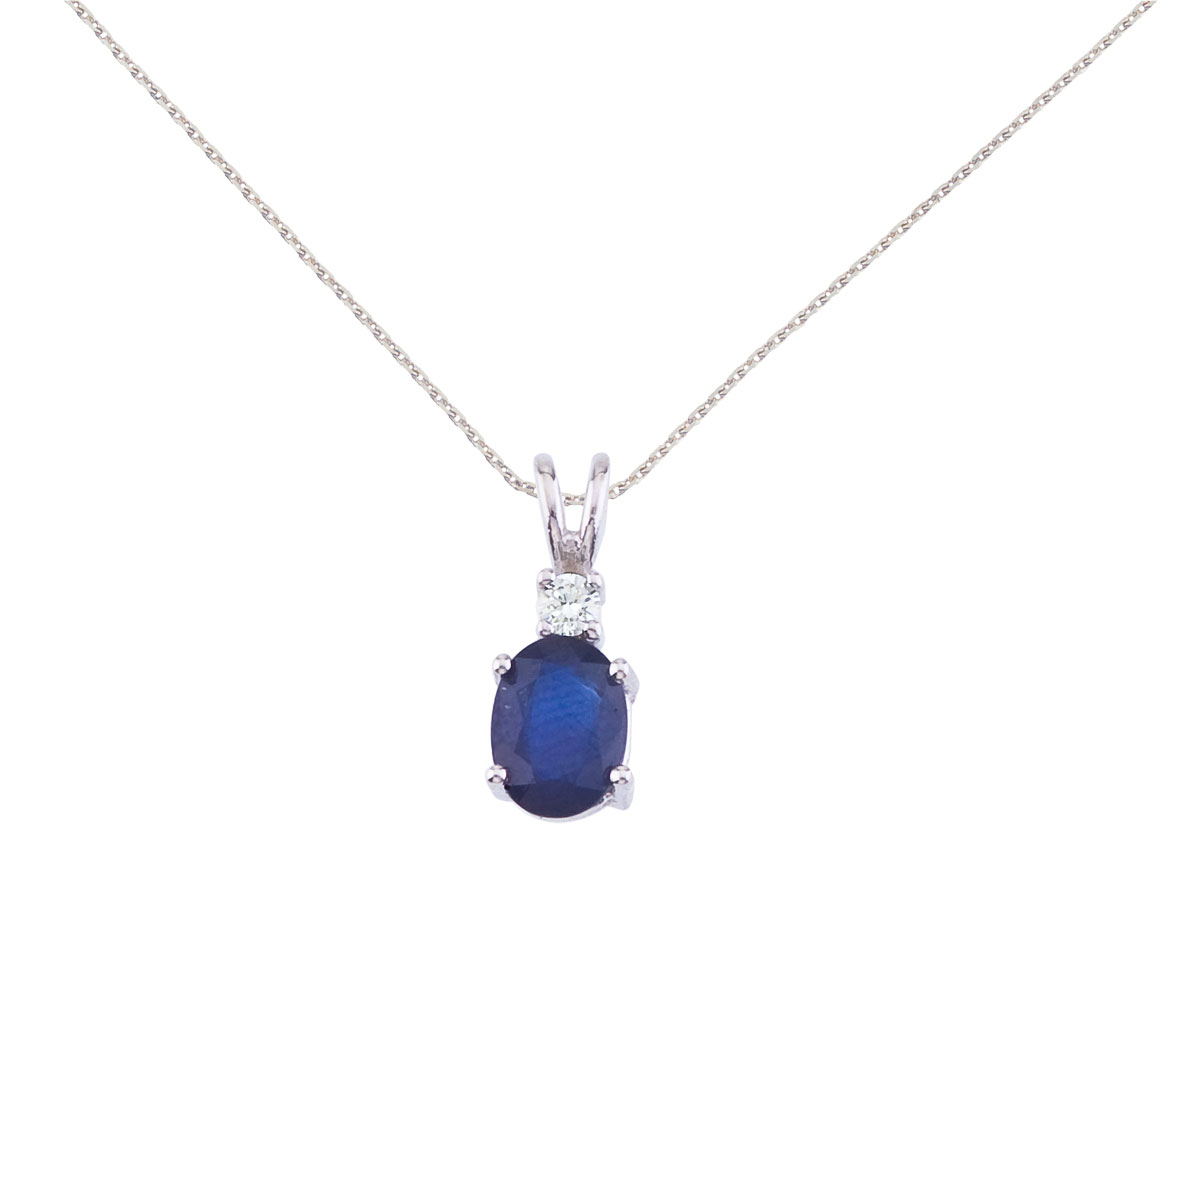 7x5 mm natural sapphire and diamond pendant set in 14k white gold.